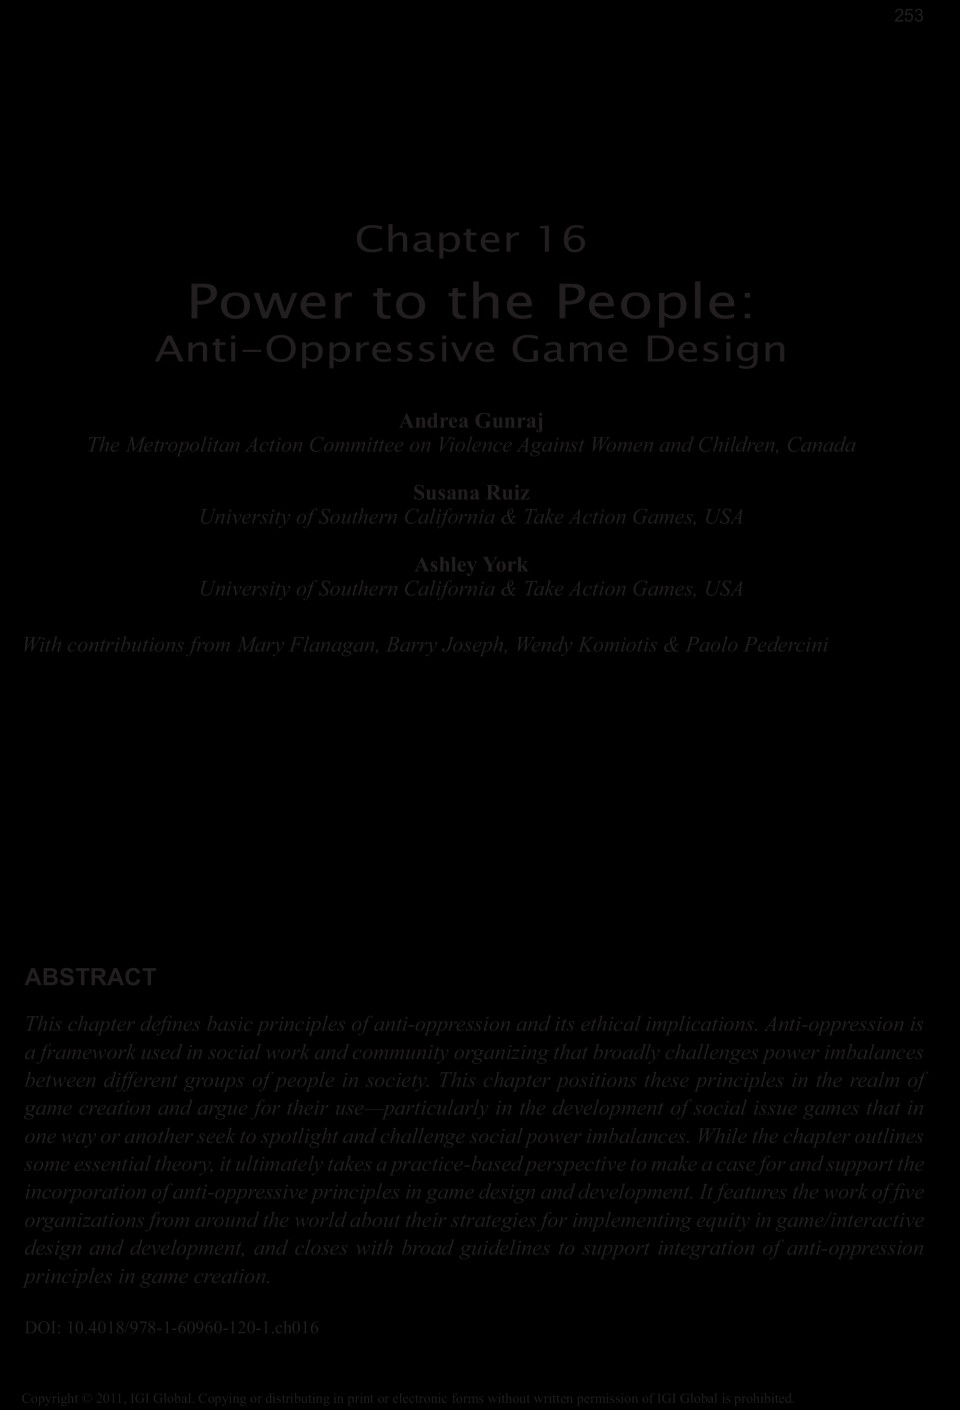 015 Power To The People Short Essay On Famine Marvelous 960